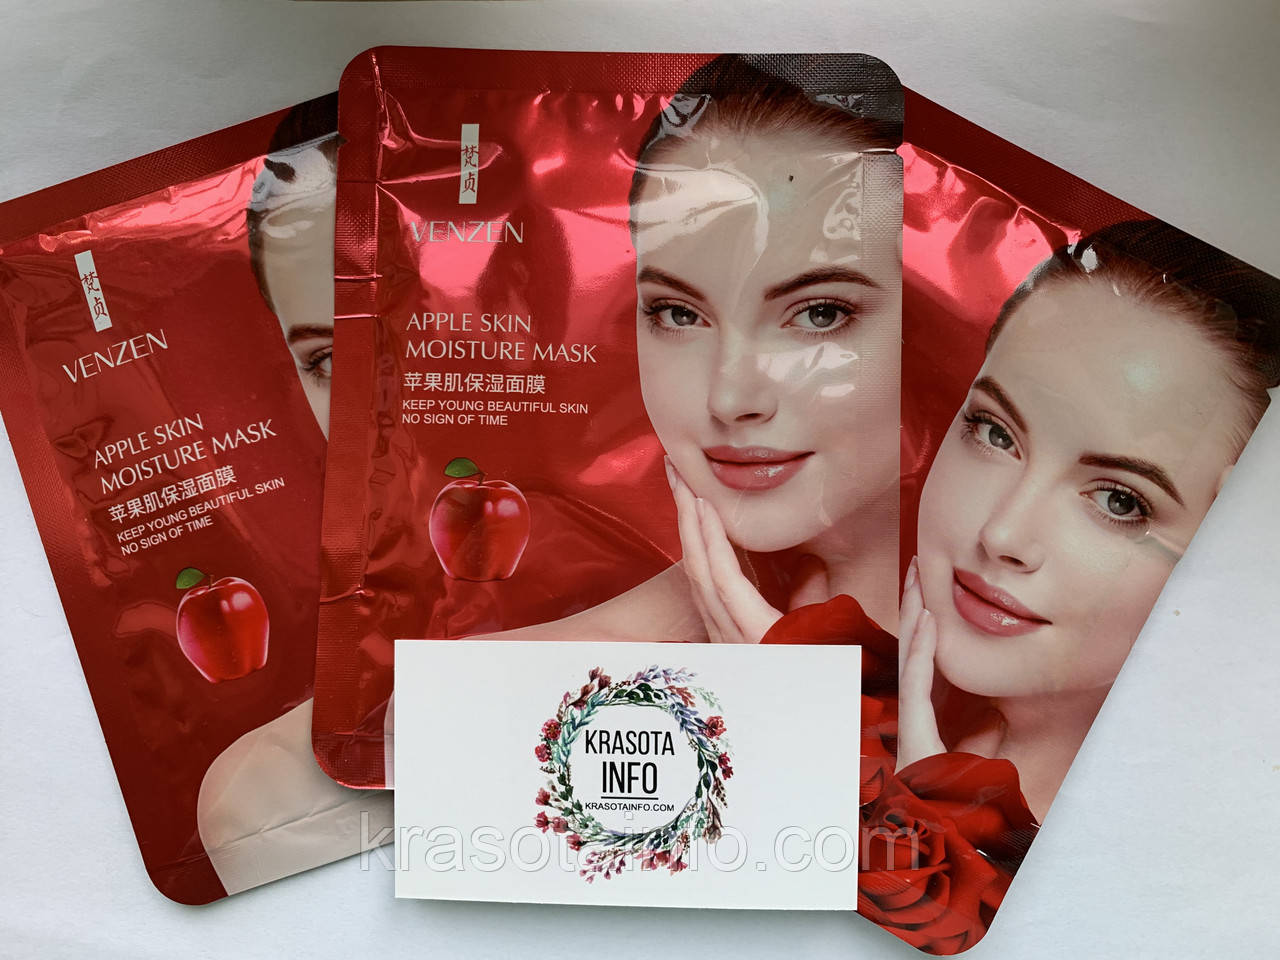 Тканевая маска для лица с яблочным соком и гиалуроновой кислотой VENZEN APPLE SKIN MOISTURE MASK, 25 г